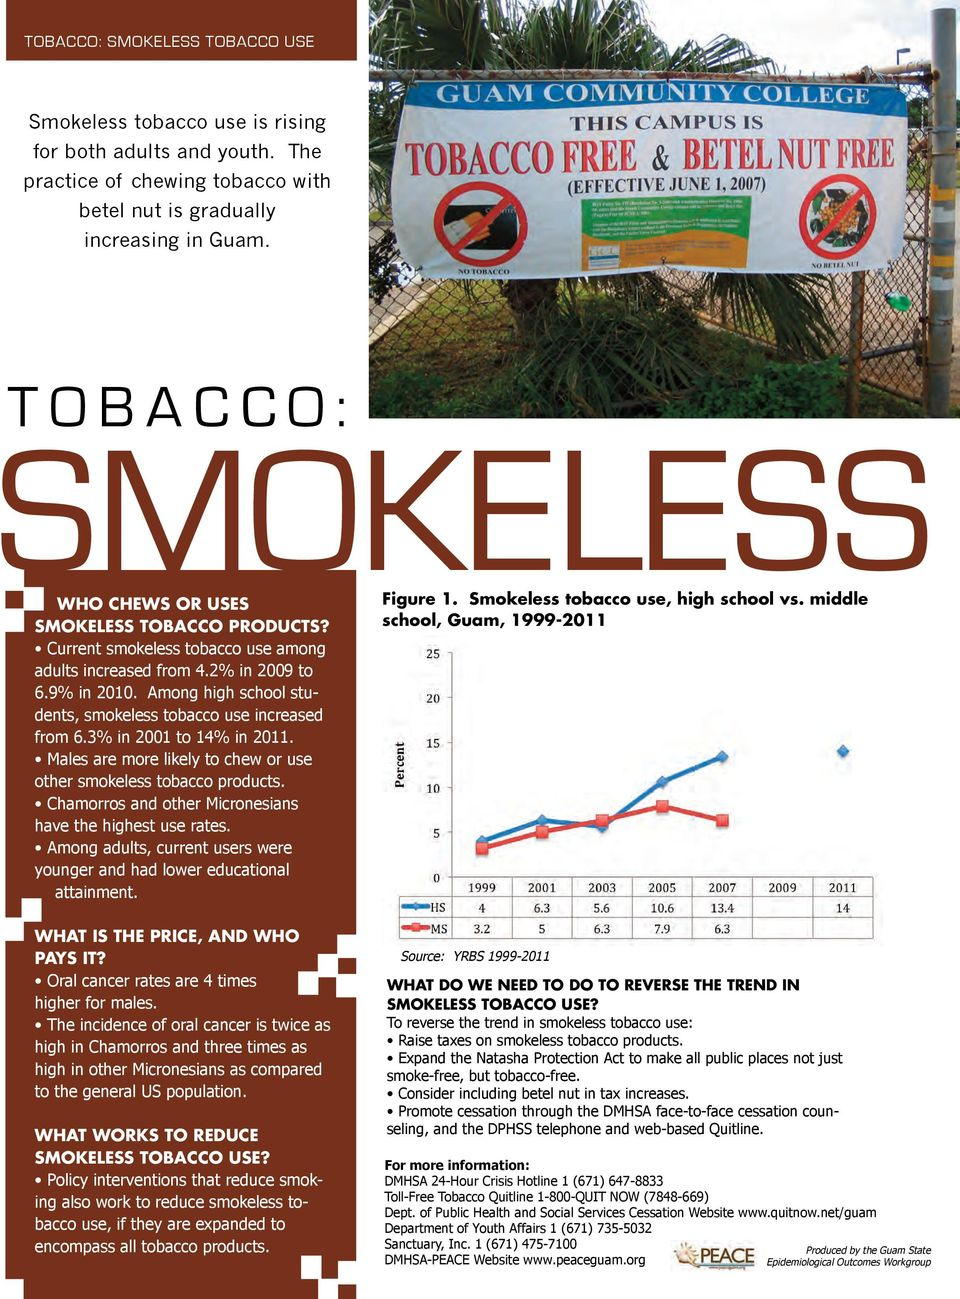 Among high school students, smokeless tobacco use increased from 6.3% in 2001 to 14% in 2011. Males are more likely to chew or use other smokeless tobacco products.